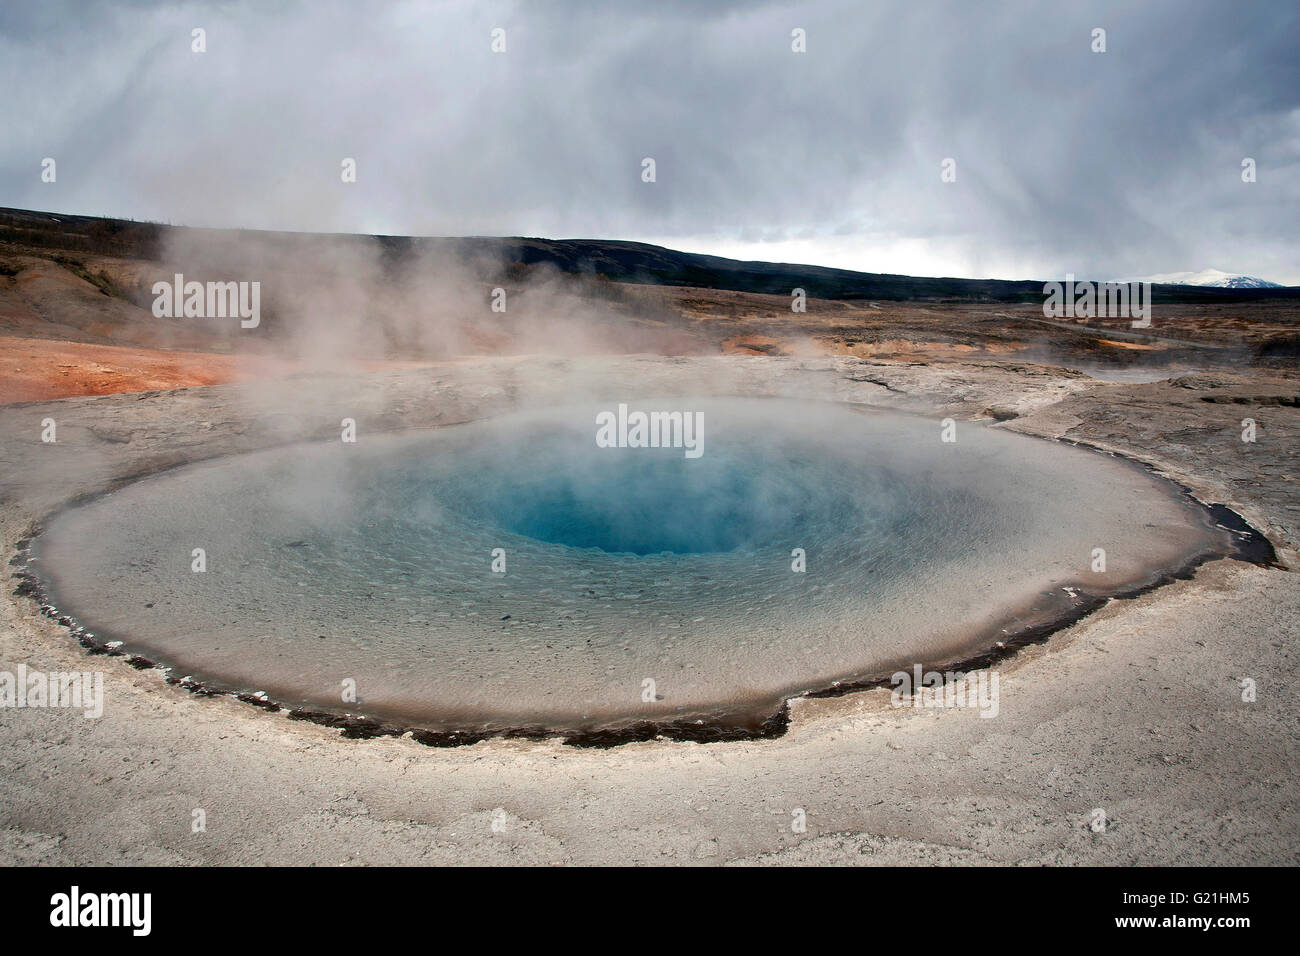 Geysir, high temperature area in Haukadalur Valley, tourist attractions, the Golden Circle Route, Iceland Stock Photo